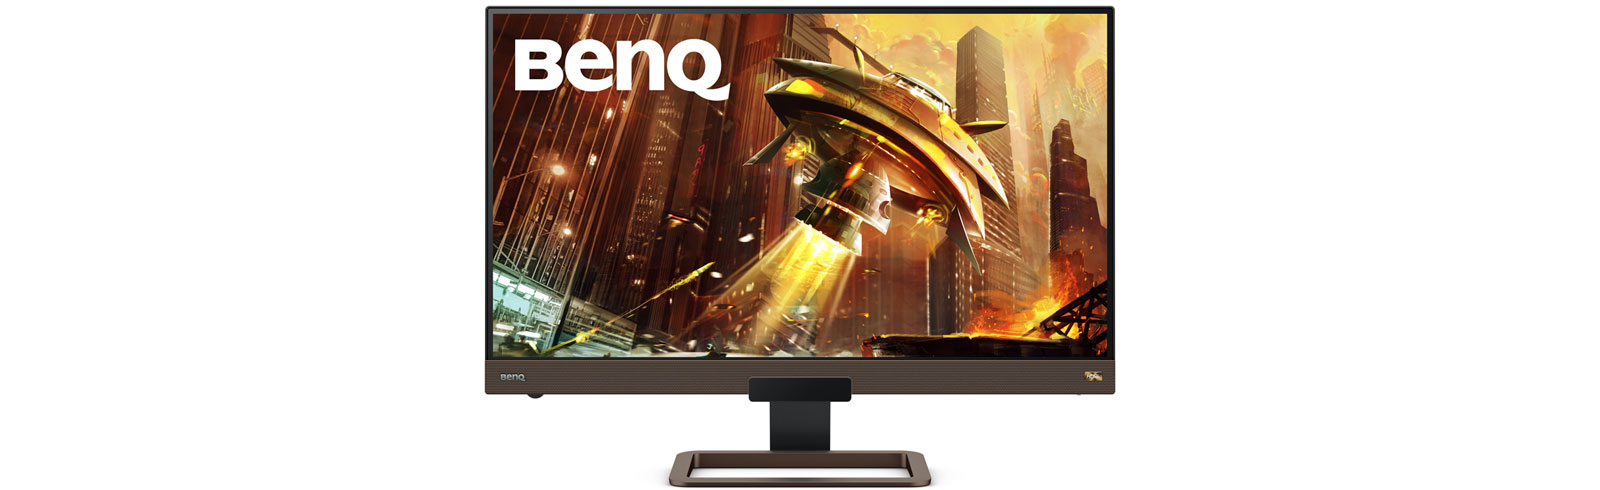 BenQ EX2780Q is a new 144Hz gaming monitor with HDRi Technology